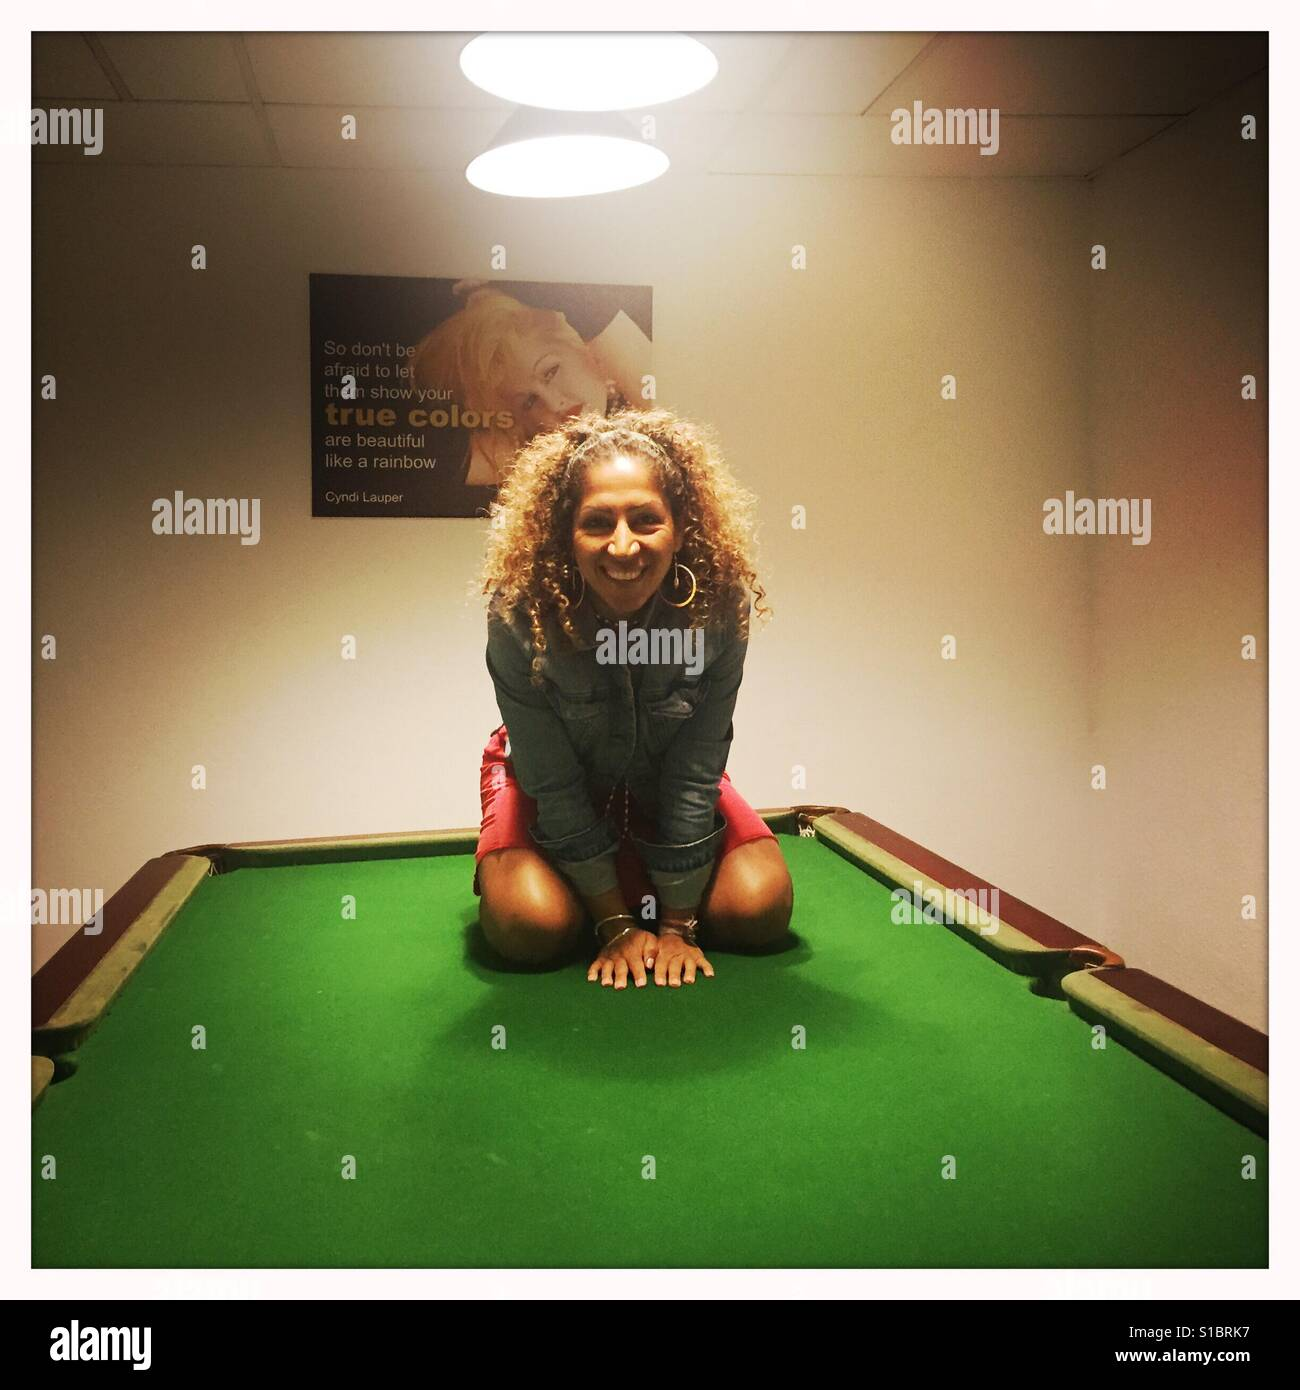 Girl With Curly Long Hair Kneeling On A Pool Table Stock Photo - How long is a pool table